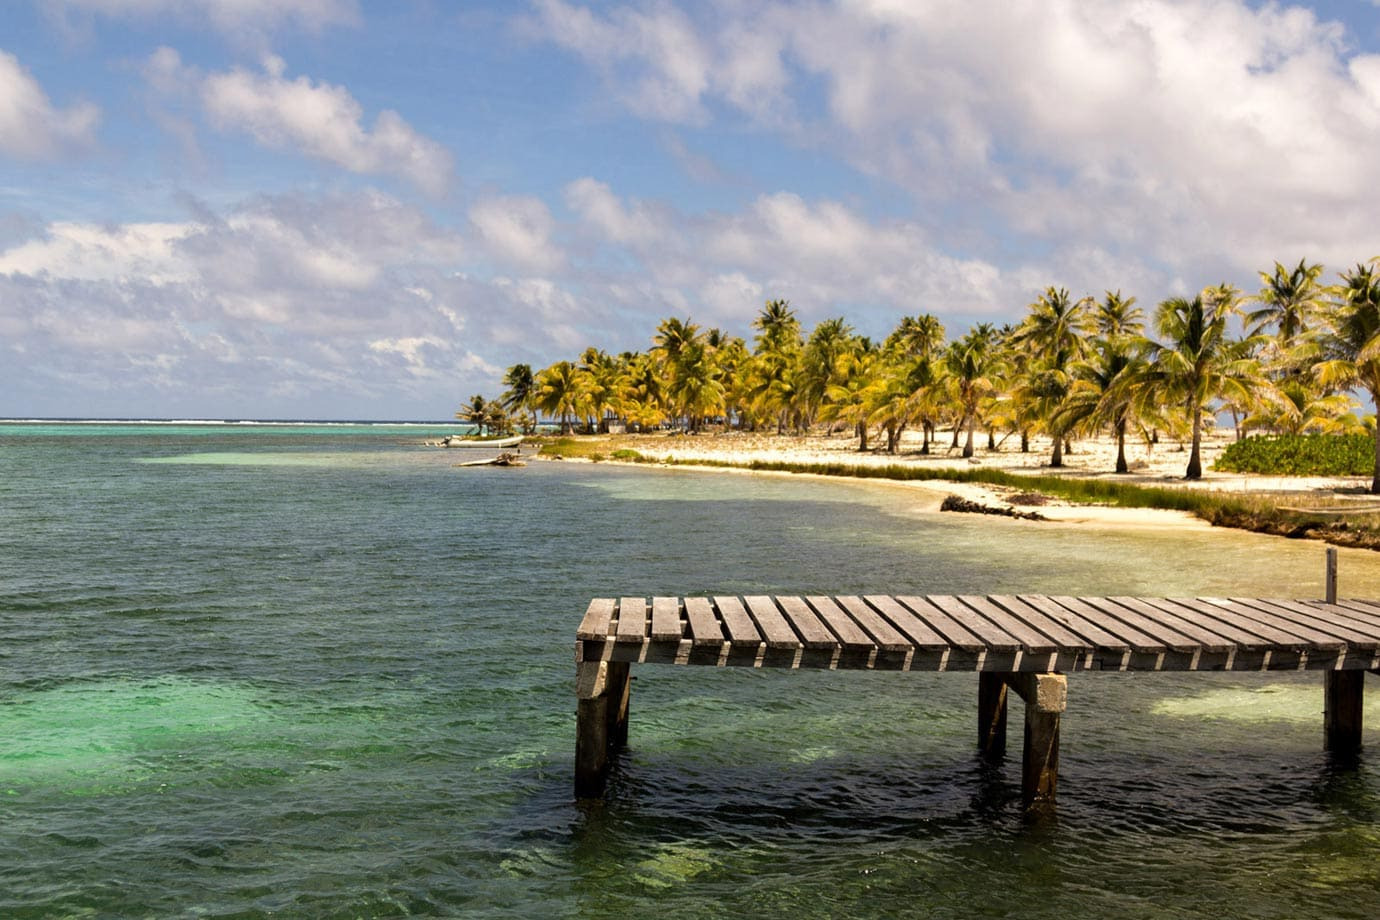 Long Caye, 40kms off the coast of Belize, was simply stunning